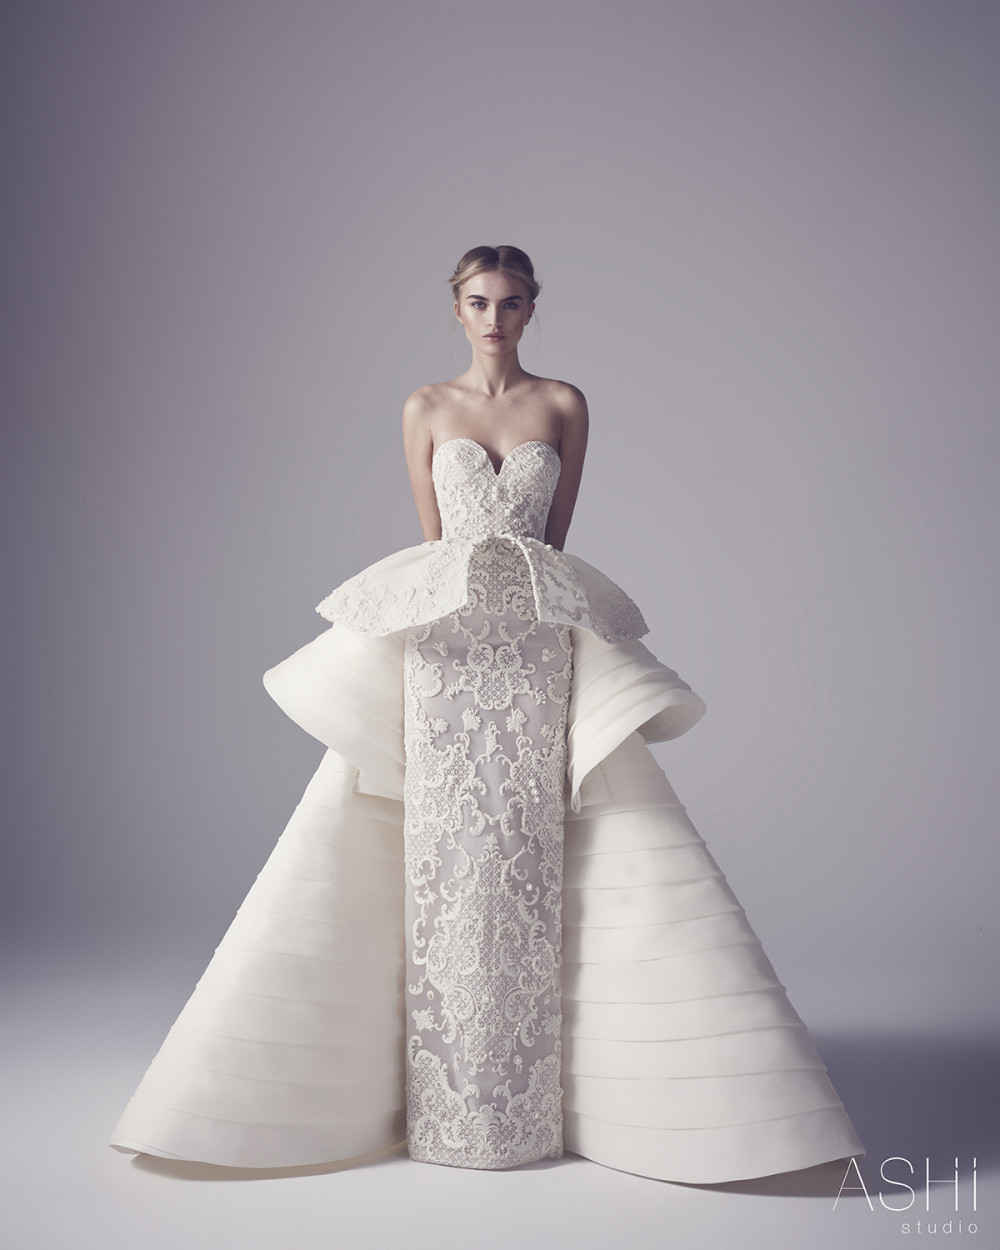 Ashi Studio_Spring Summer 2016 Couture Collection_BellaNaija Weddings_Ashi_03-131_large